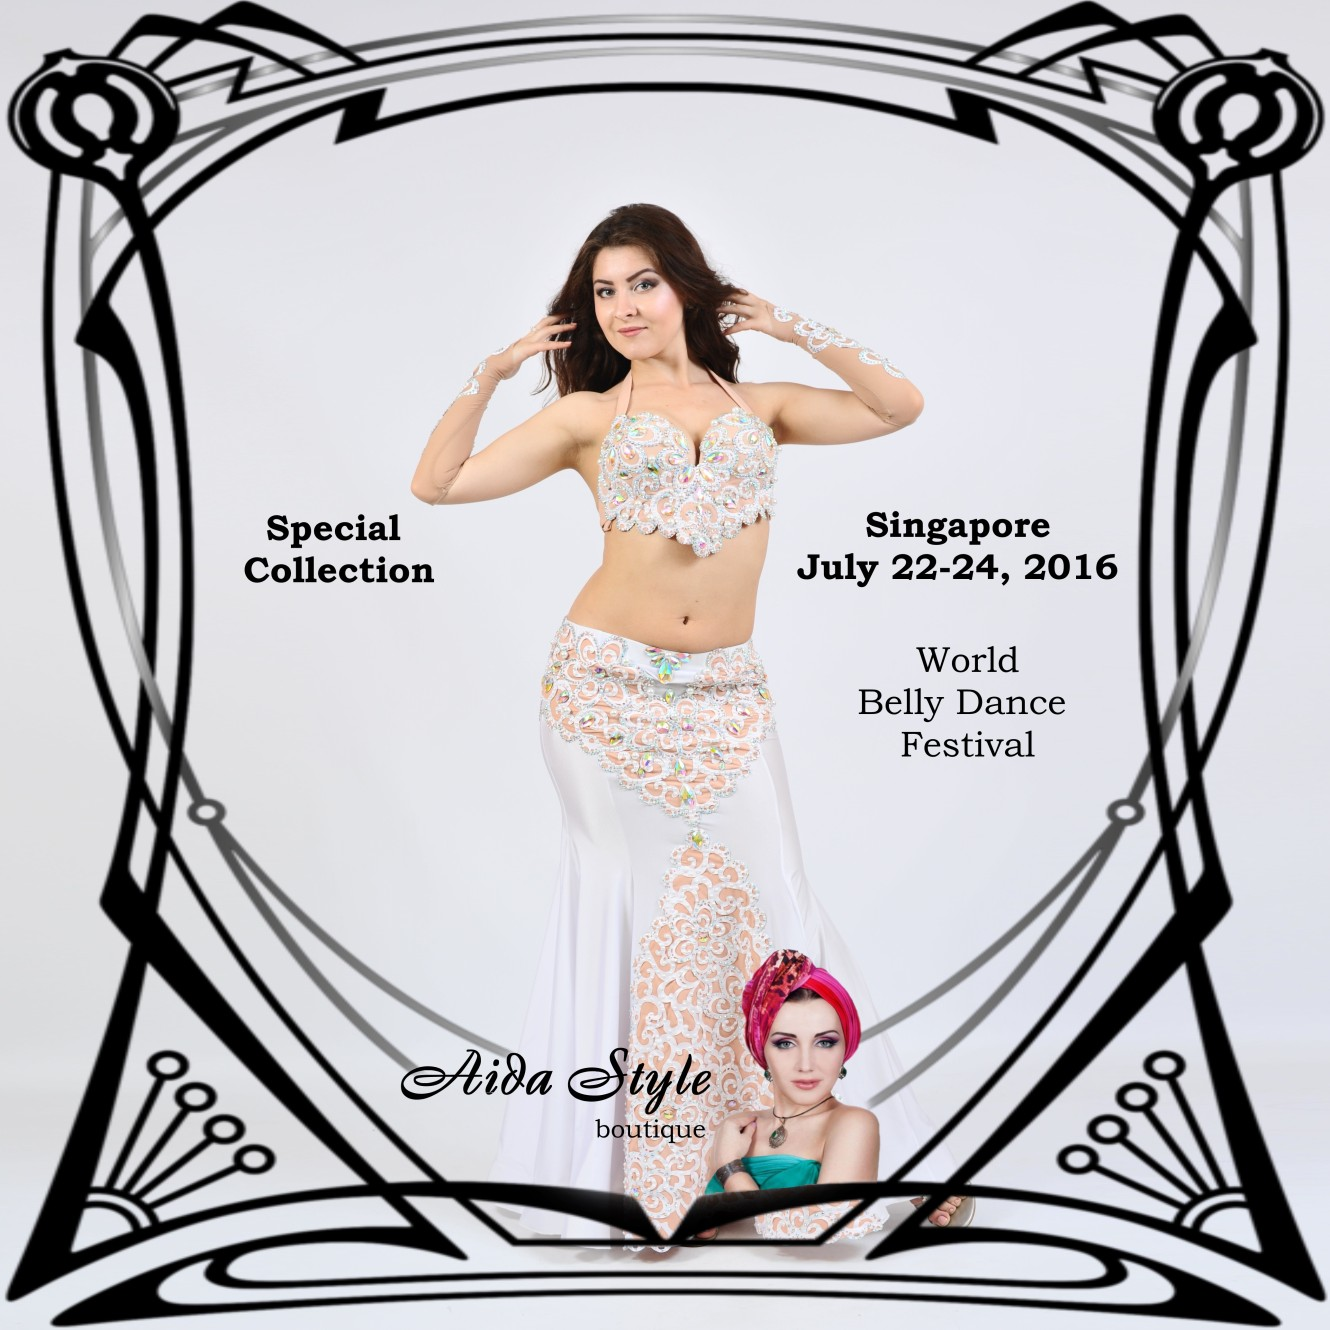 Aida Style in Singapore, World Belly Dance Festival 2016